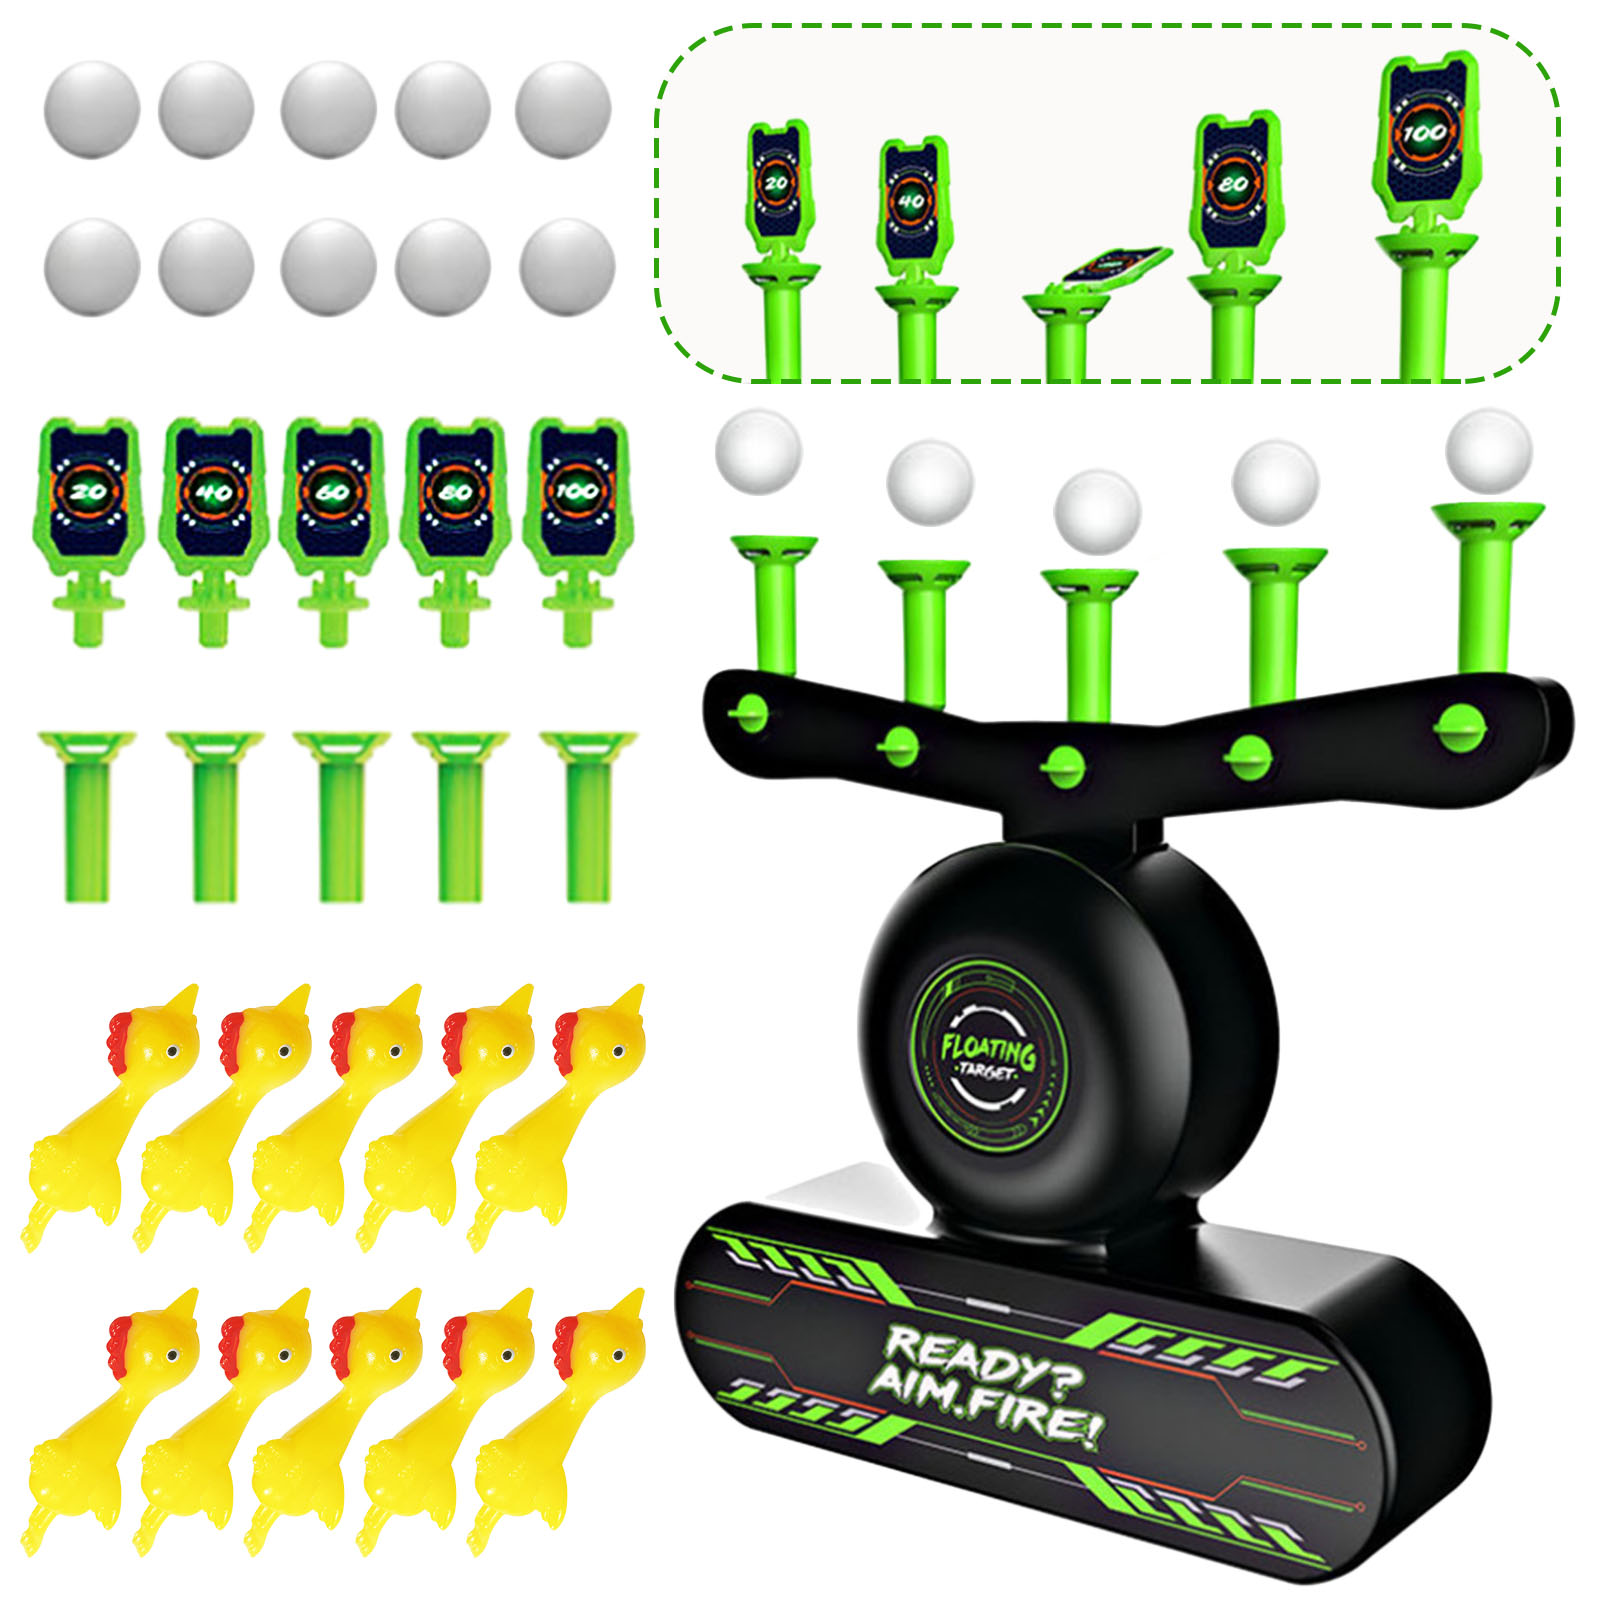 32PCS Shooting Games Kit Glow in the Dark Luminous Electric Floating Target Practice Toys with Balls Chick Toys for Kids Gift